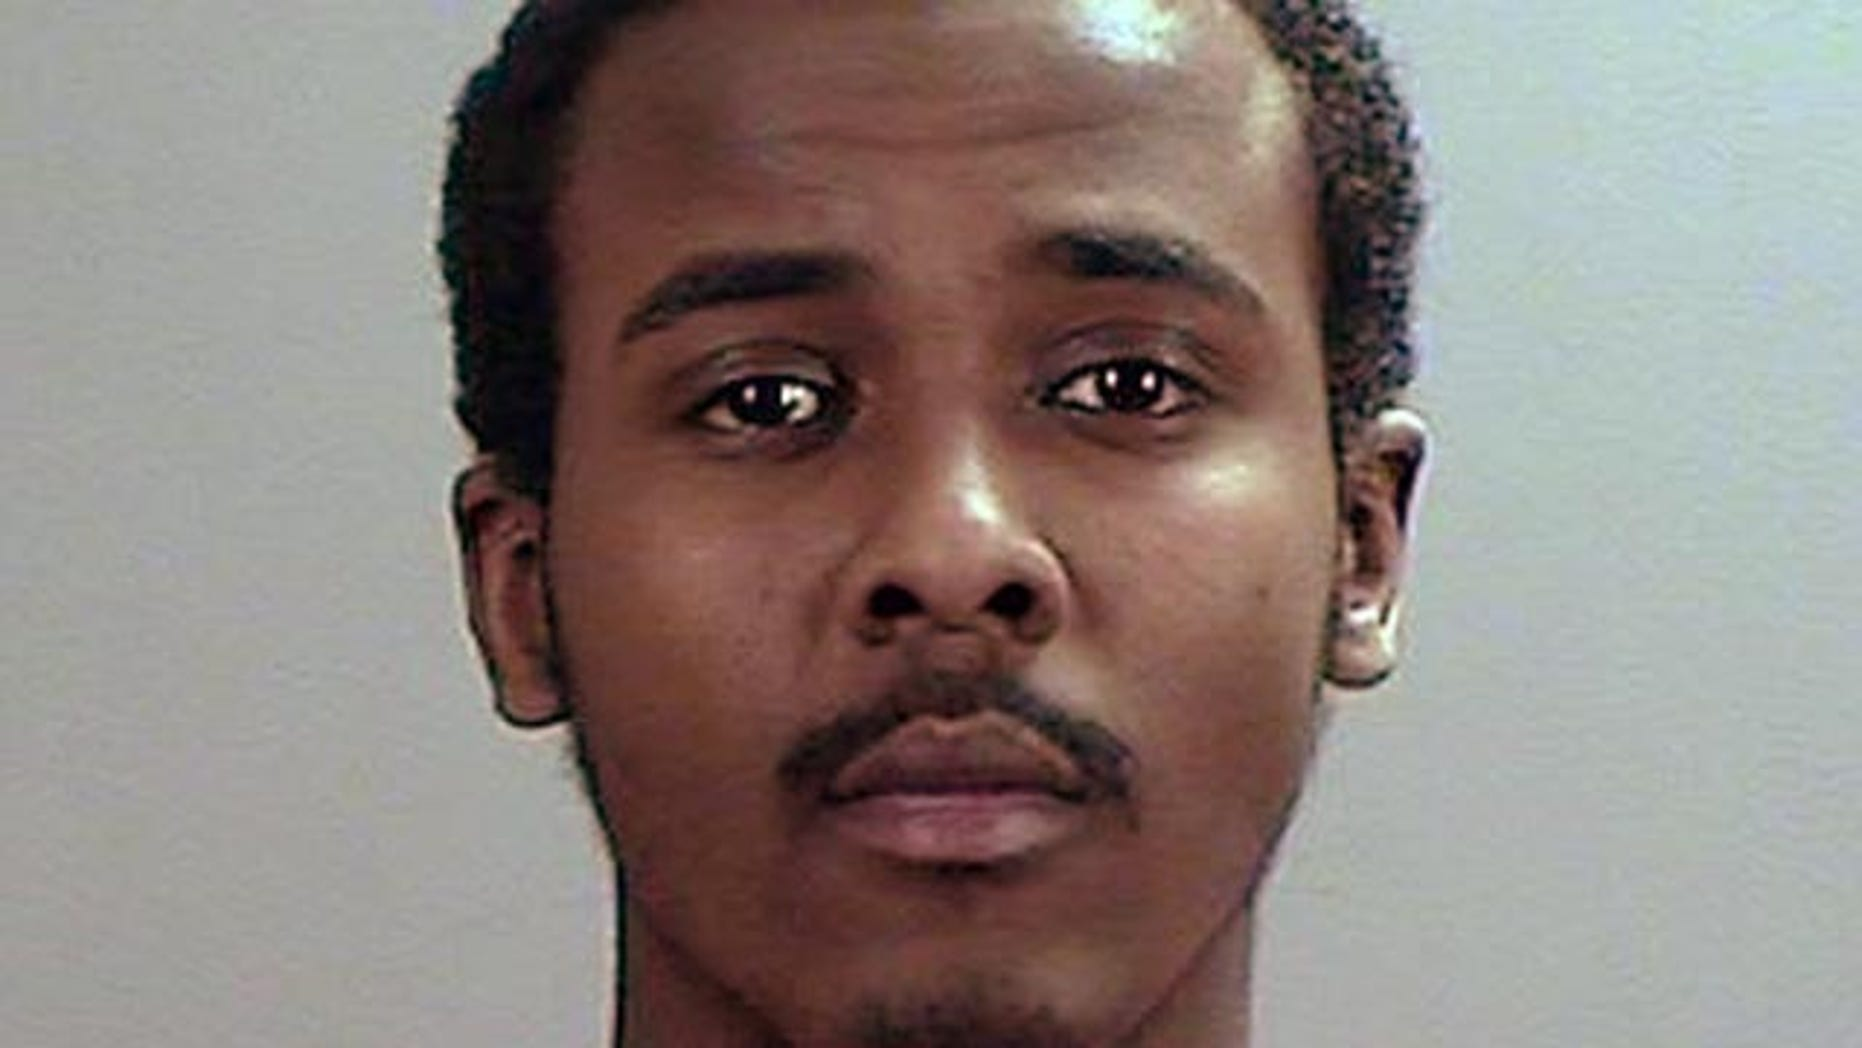 May 21, 2015: This undated photo provided the Sherburne County, Minn., Sheriffs Office shows Abdirahman Yasin Daud, one of several Minnesota men accused of conspiring to travel to Syria to join the Islamic State group. (Sherburne County Sheriffs Office via AP)